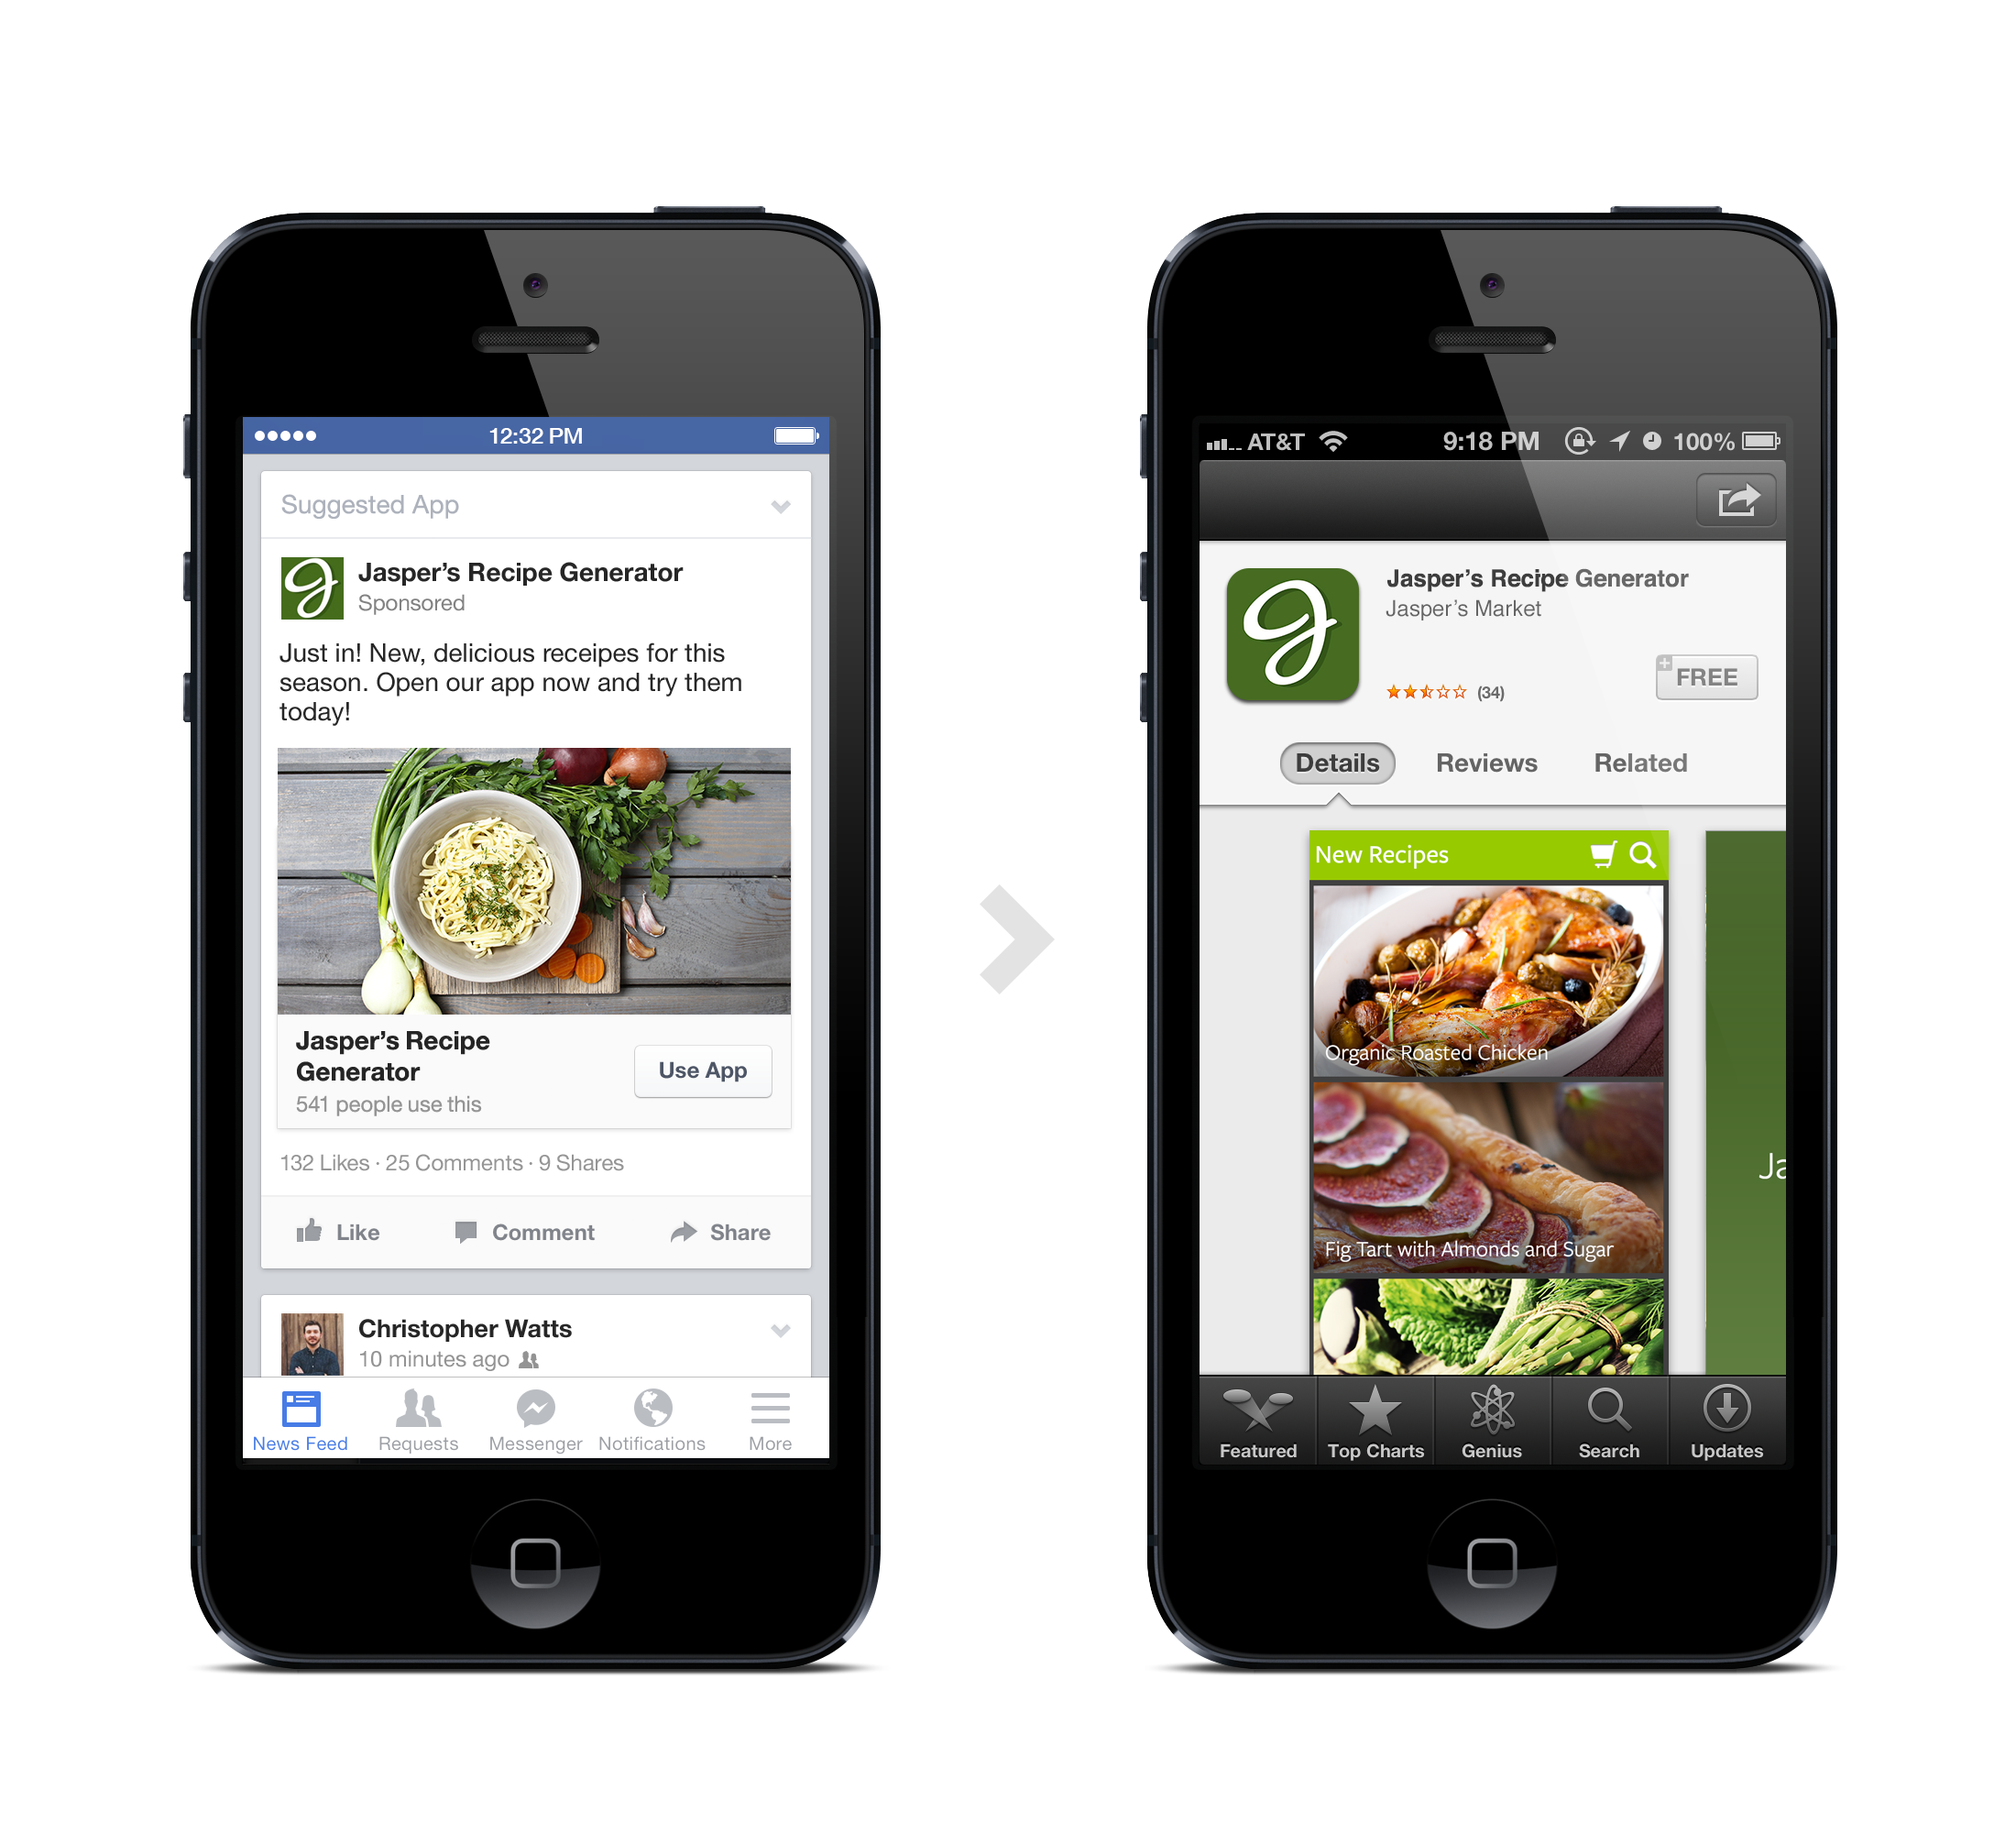 Facebook Goes Deep with Links on Mobile App Install Ads ... |Facebook Mobile App